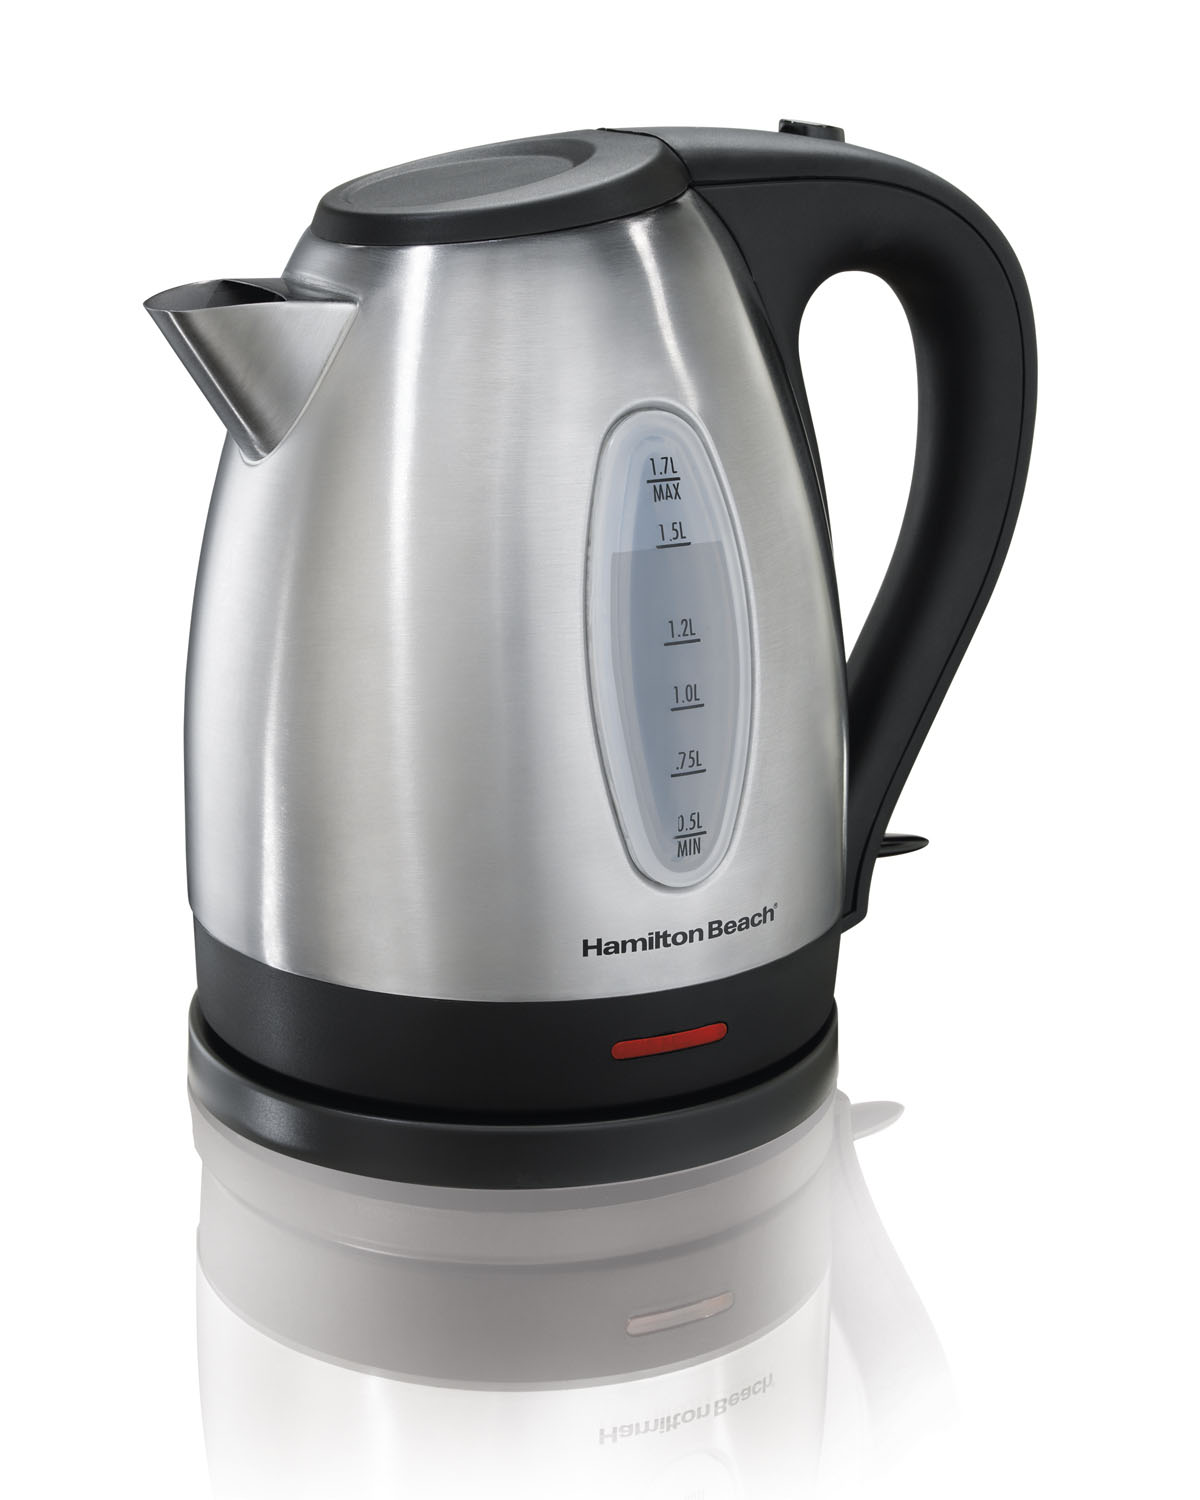 Hamilton Beach 1500W 1.7 Liter Stainless Steel Electric Kettle | 40880E